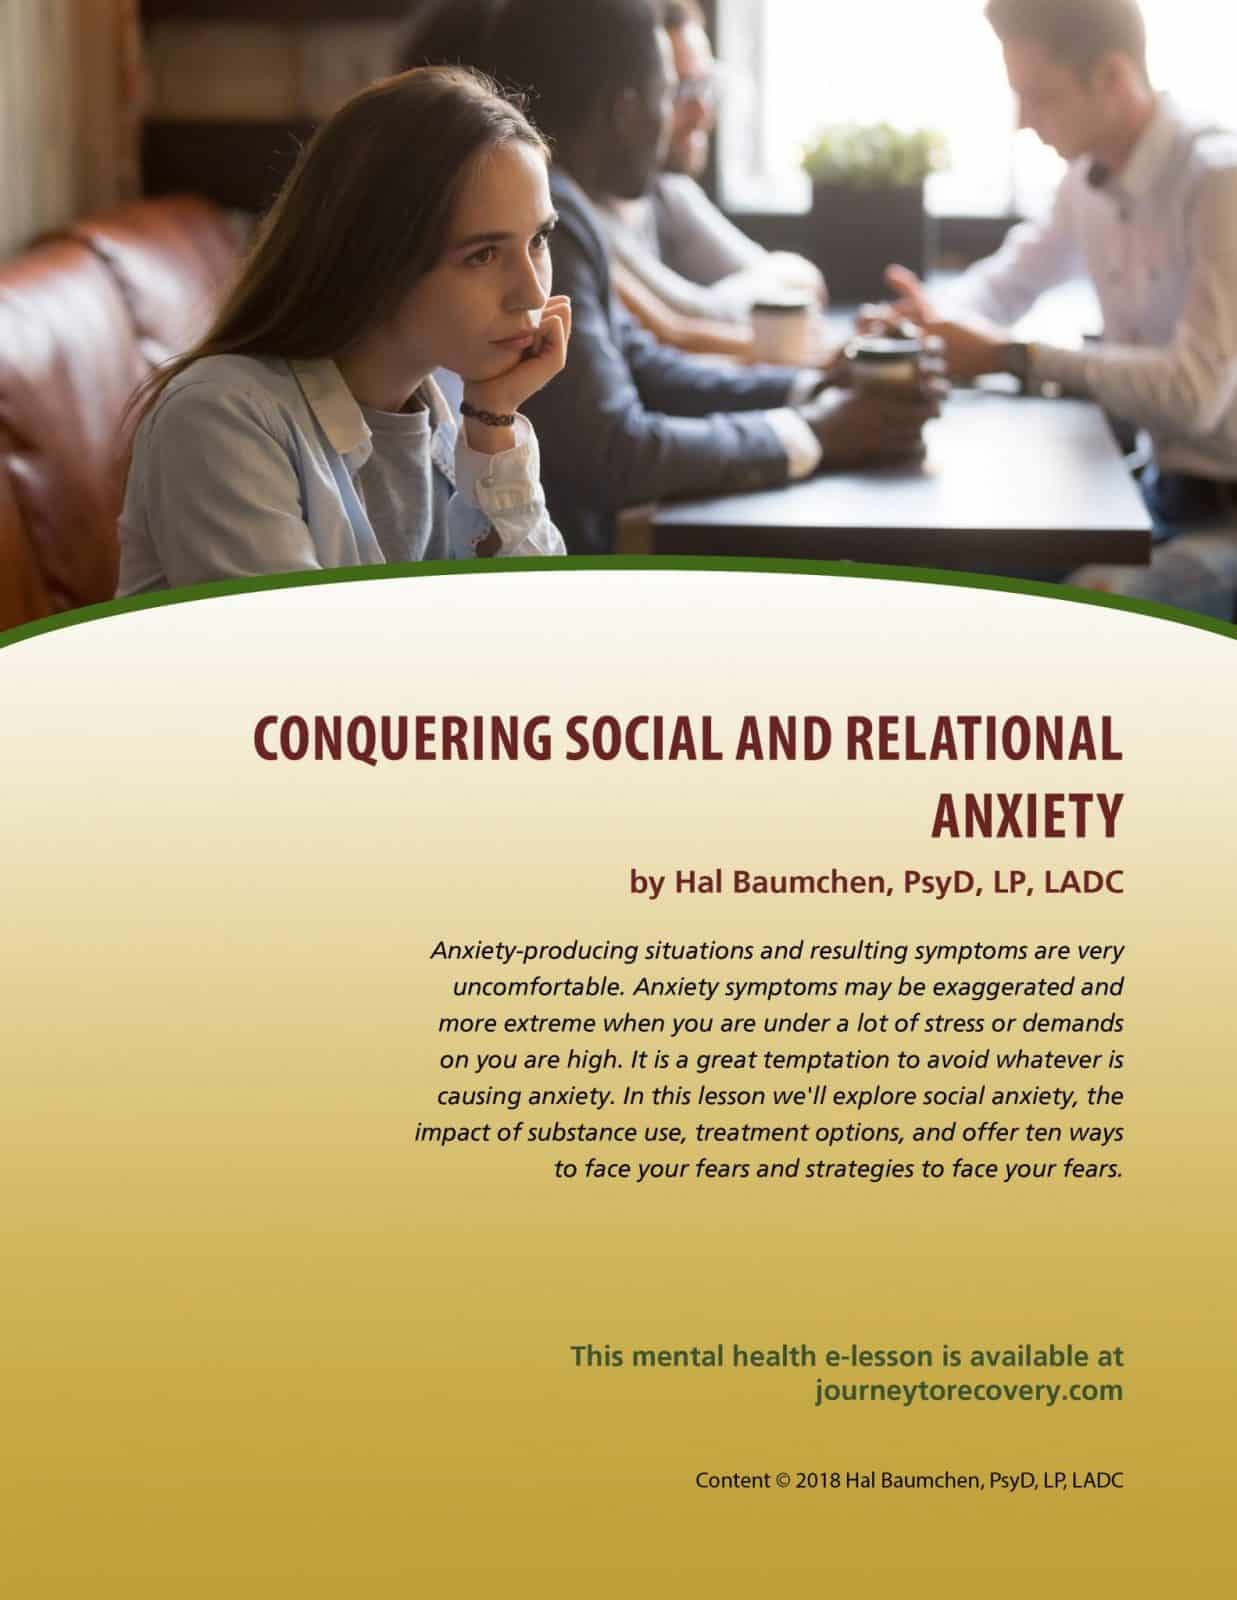 Conquering Social and Relational Anxiety (MH Lesson)